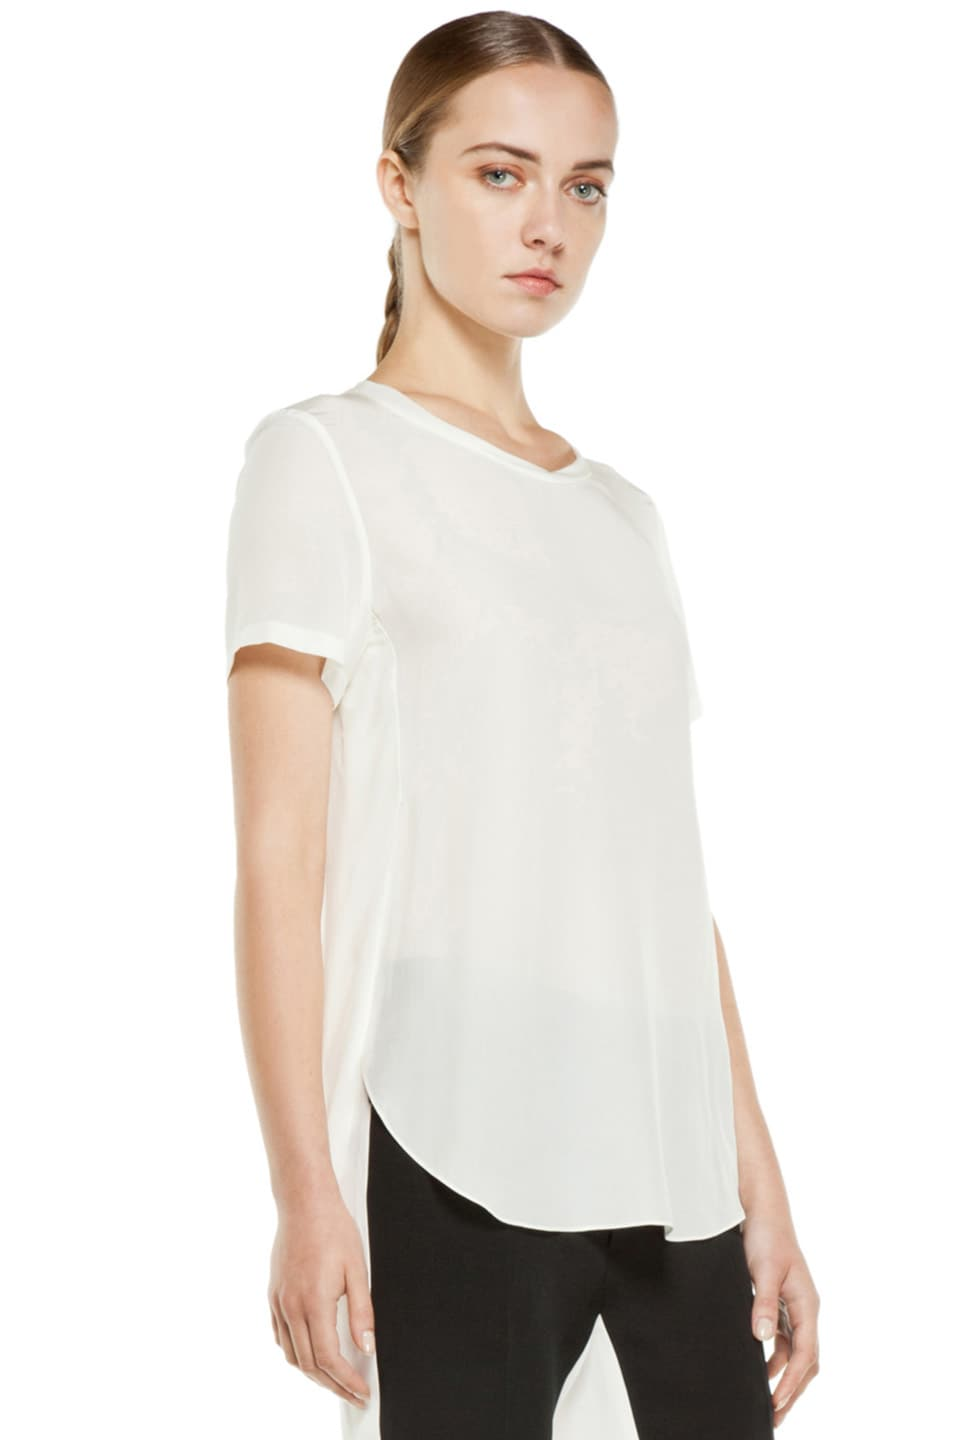 Image 3 of 3.1 phillip lim Silk Overlapped Side Tee in White